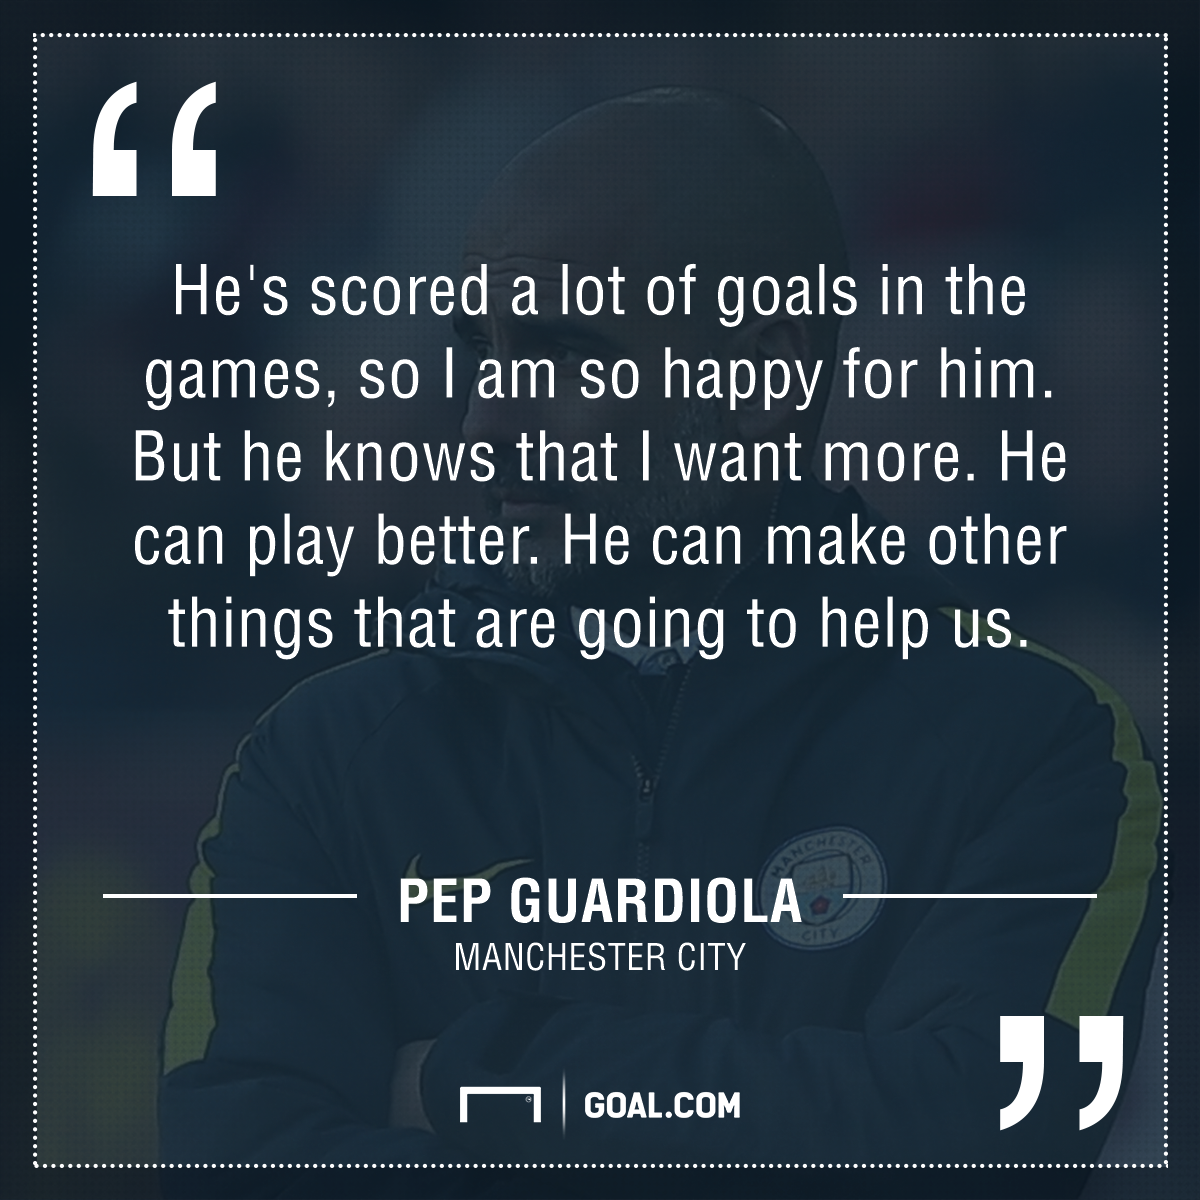 Guardiola quote GFX